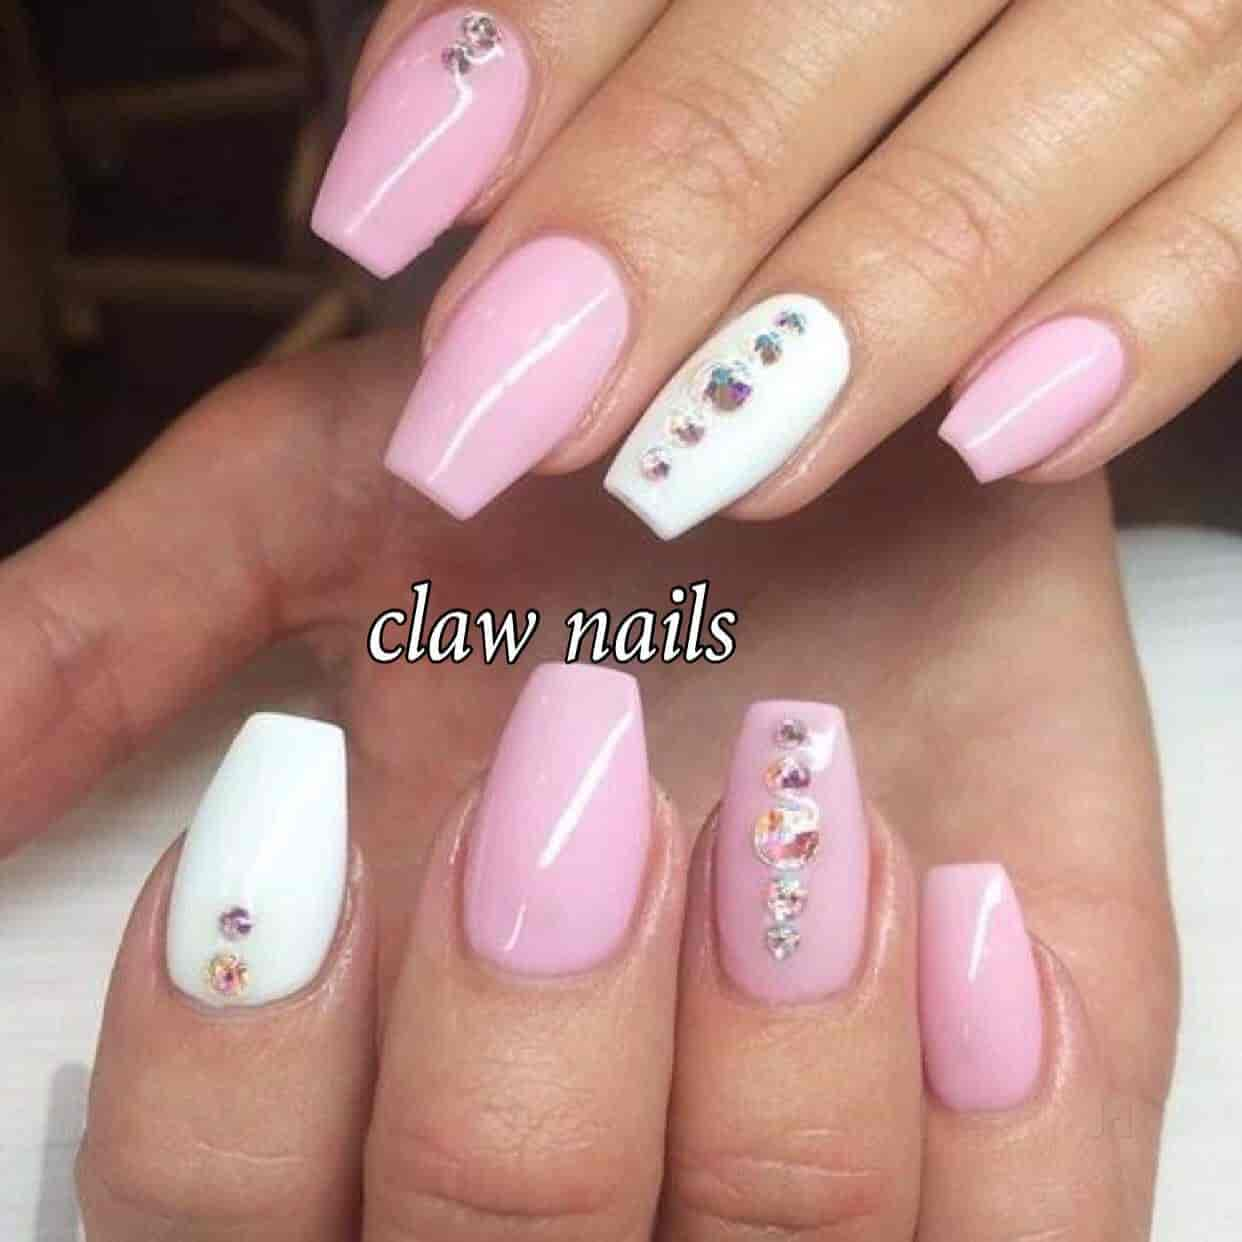 Claw by bhawna claw by bhavna beauty parlours for nail art in claw by bhawna claw by bhavna beauty parlours for nail art in ludhiana justdial prinsesfo Image collections